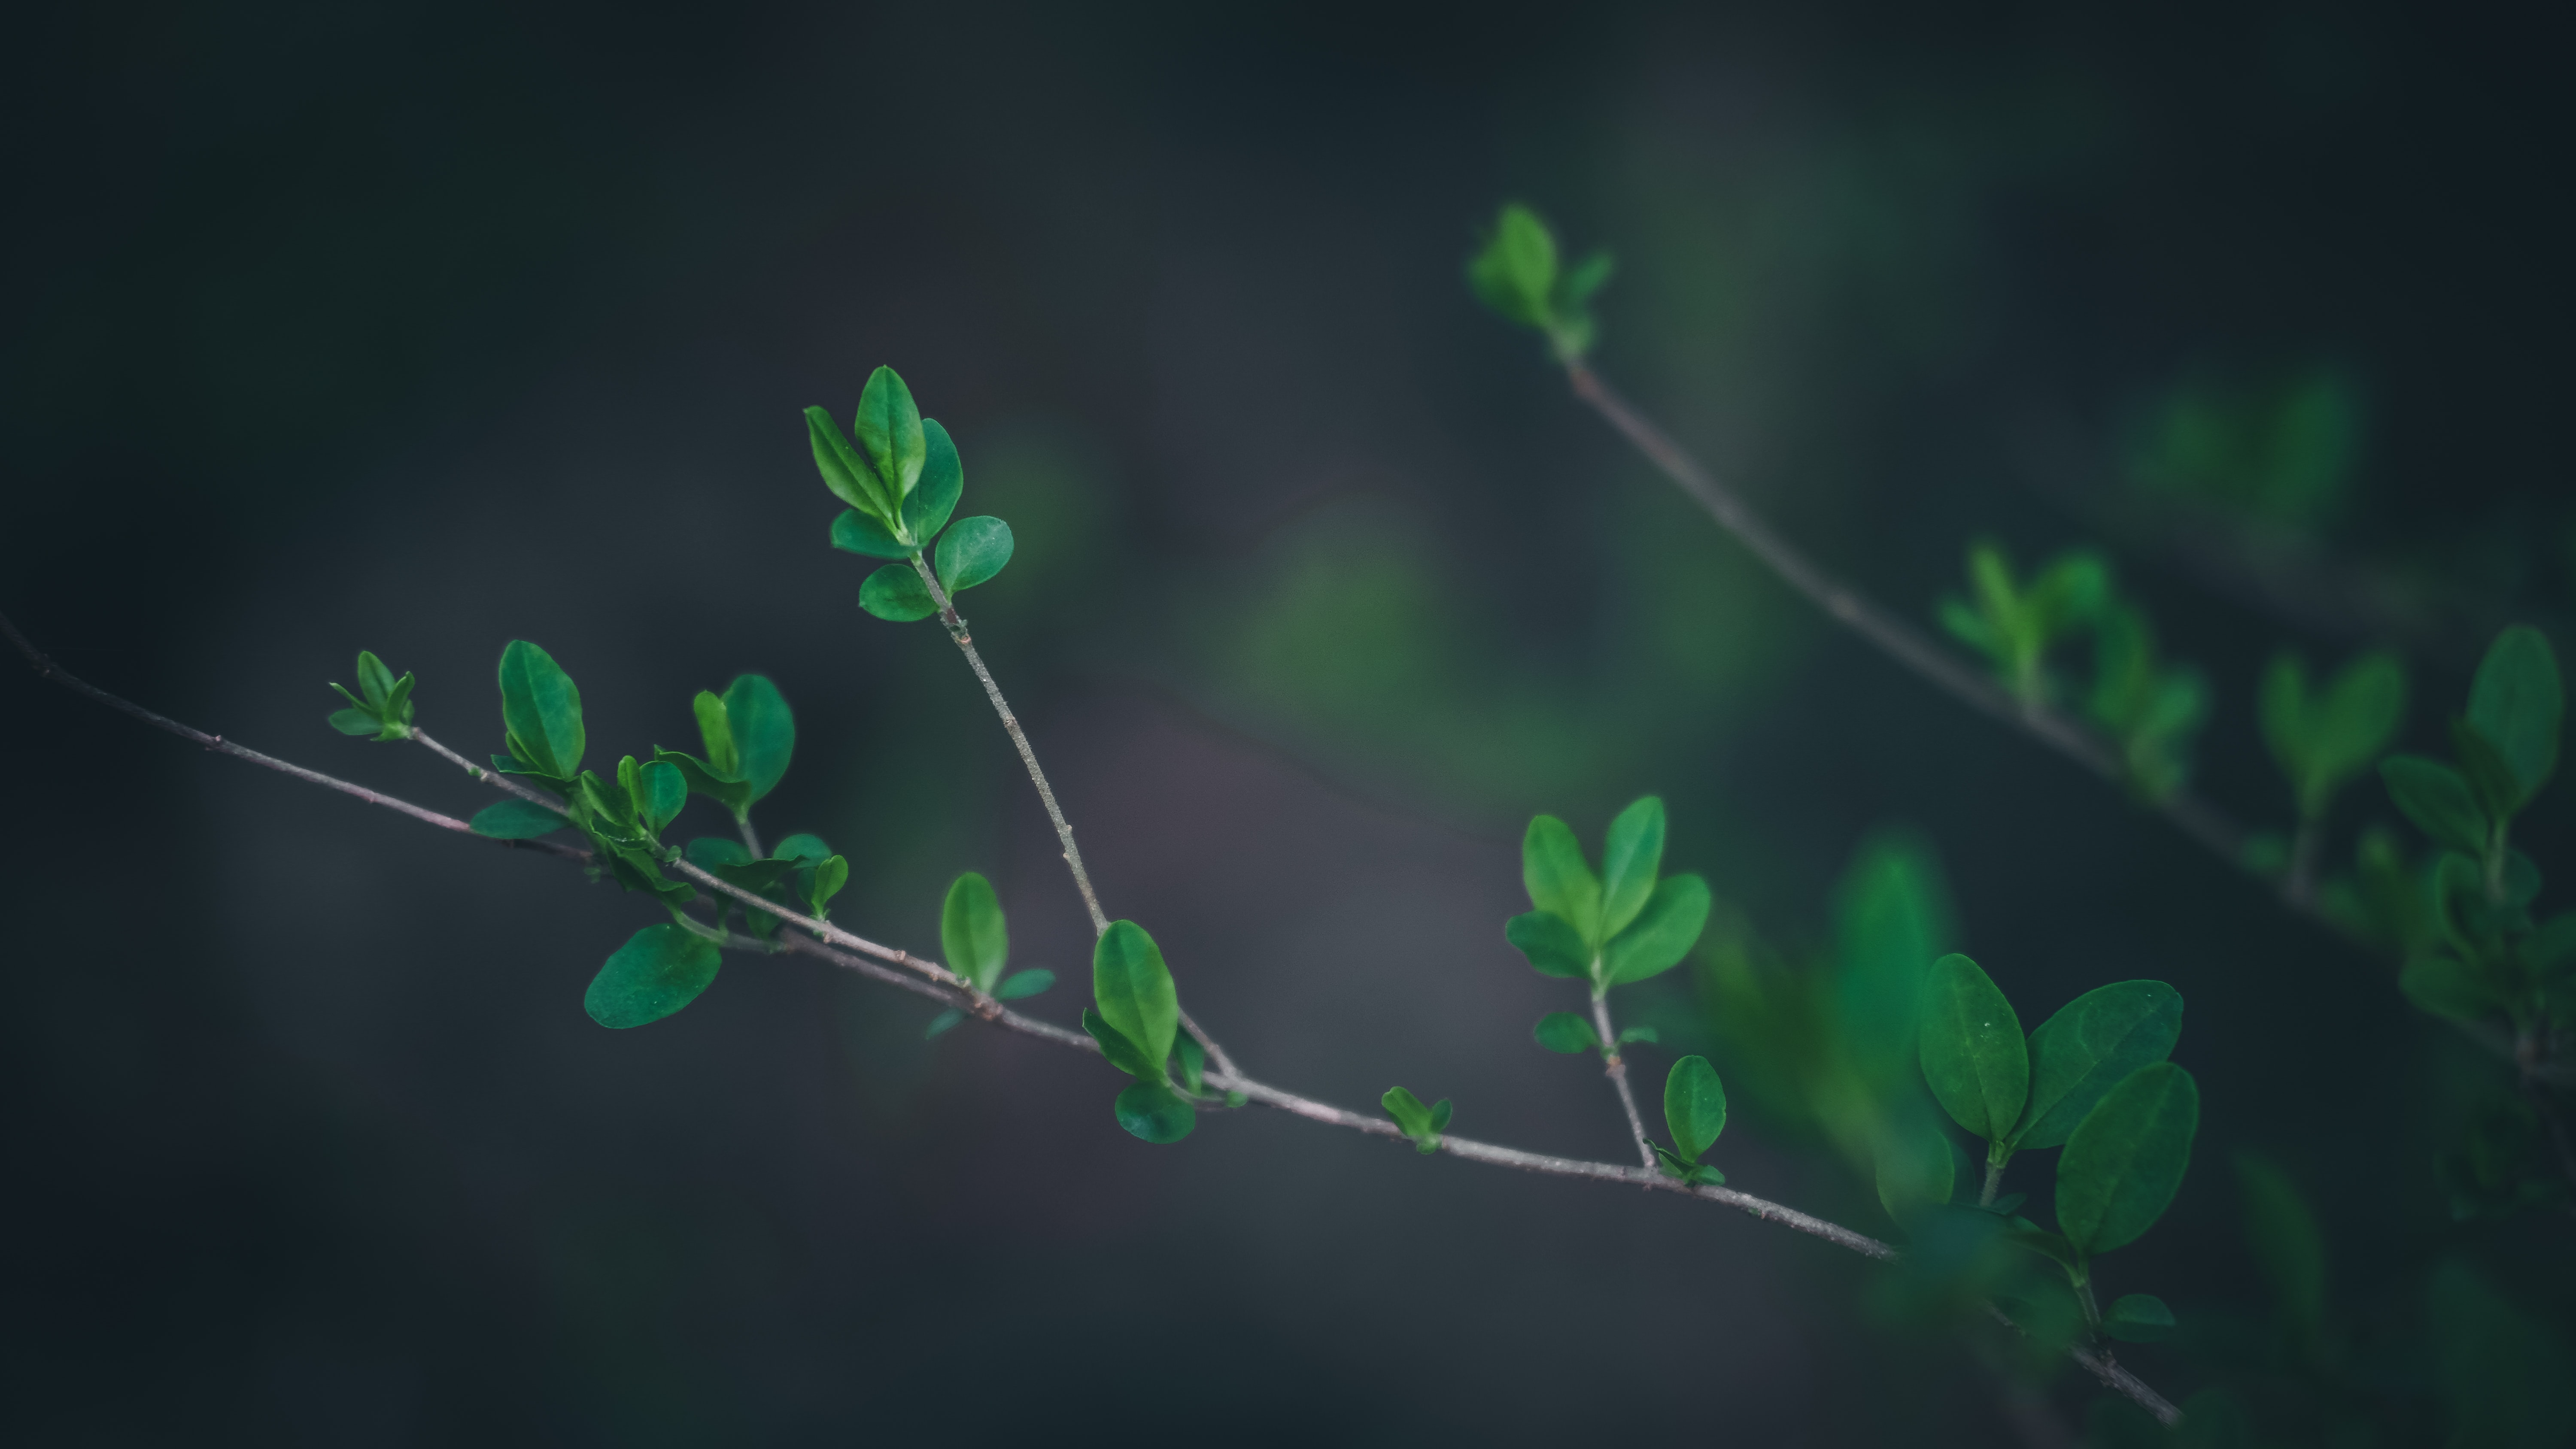 shallow focus photo of green leafed plant